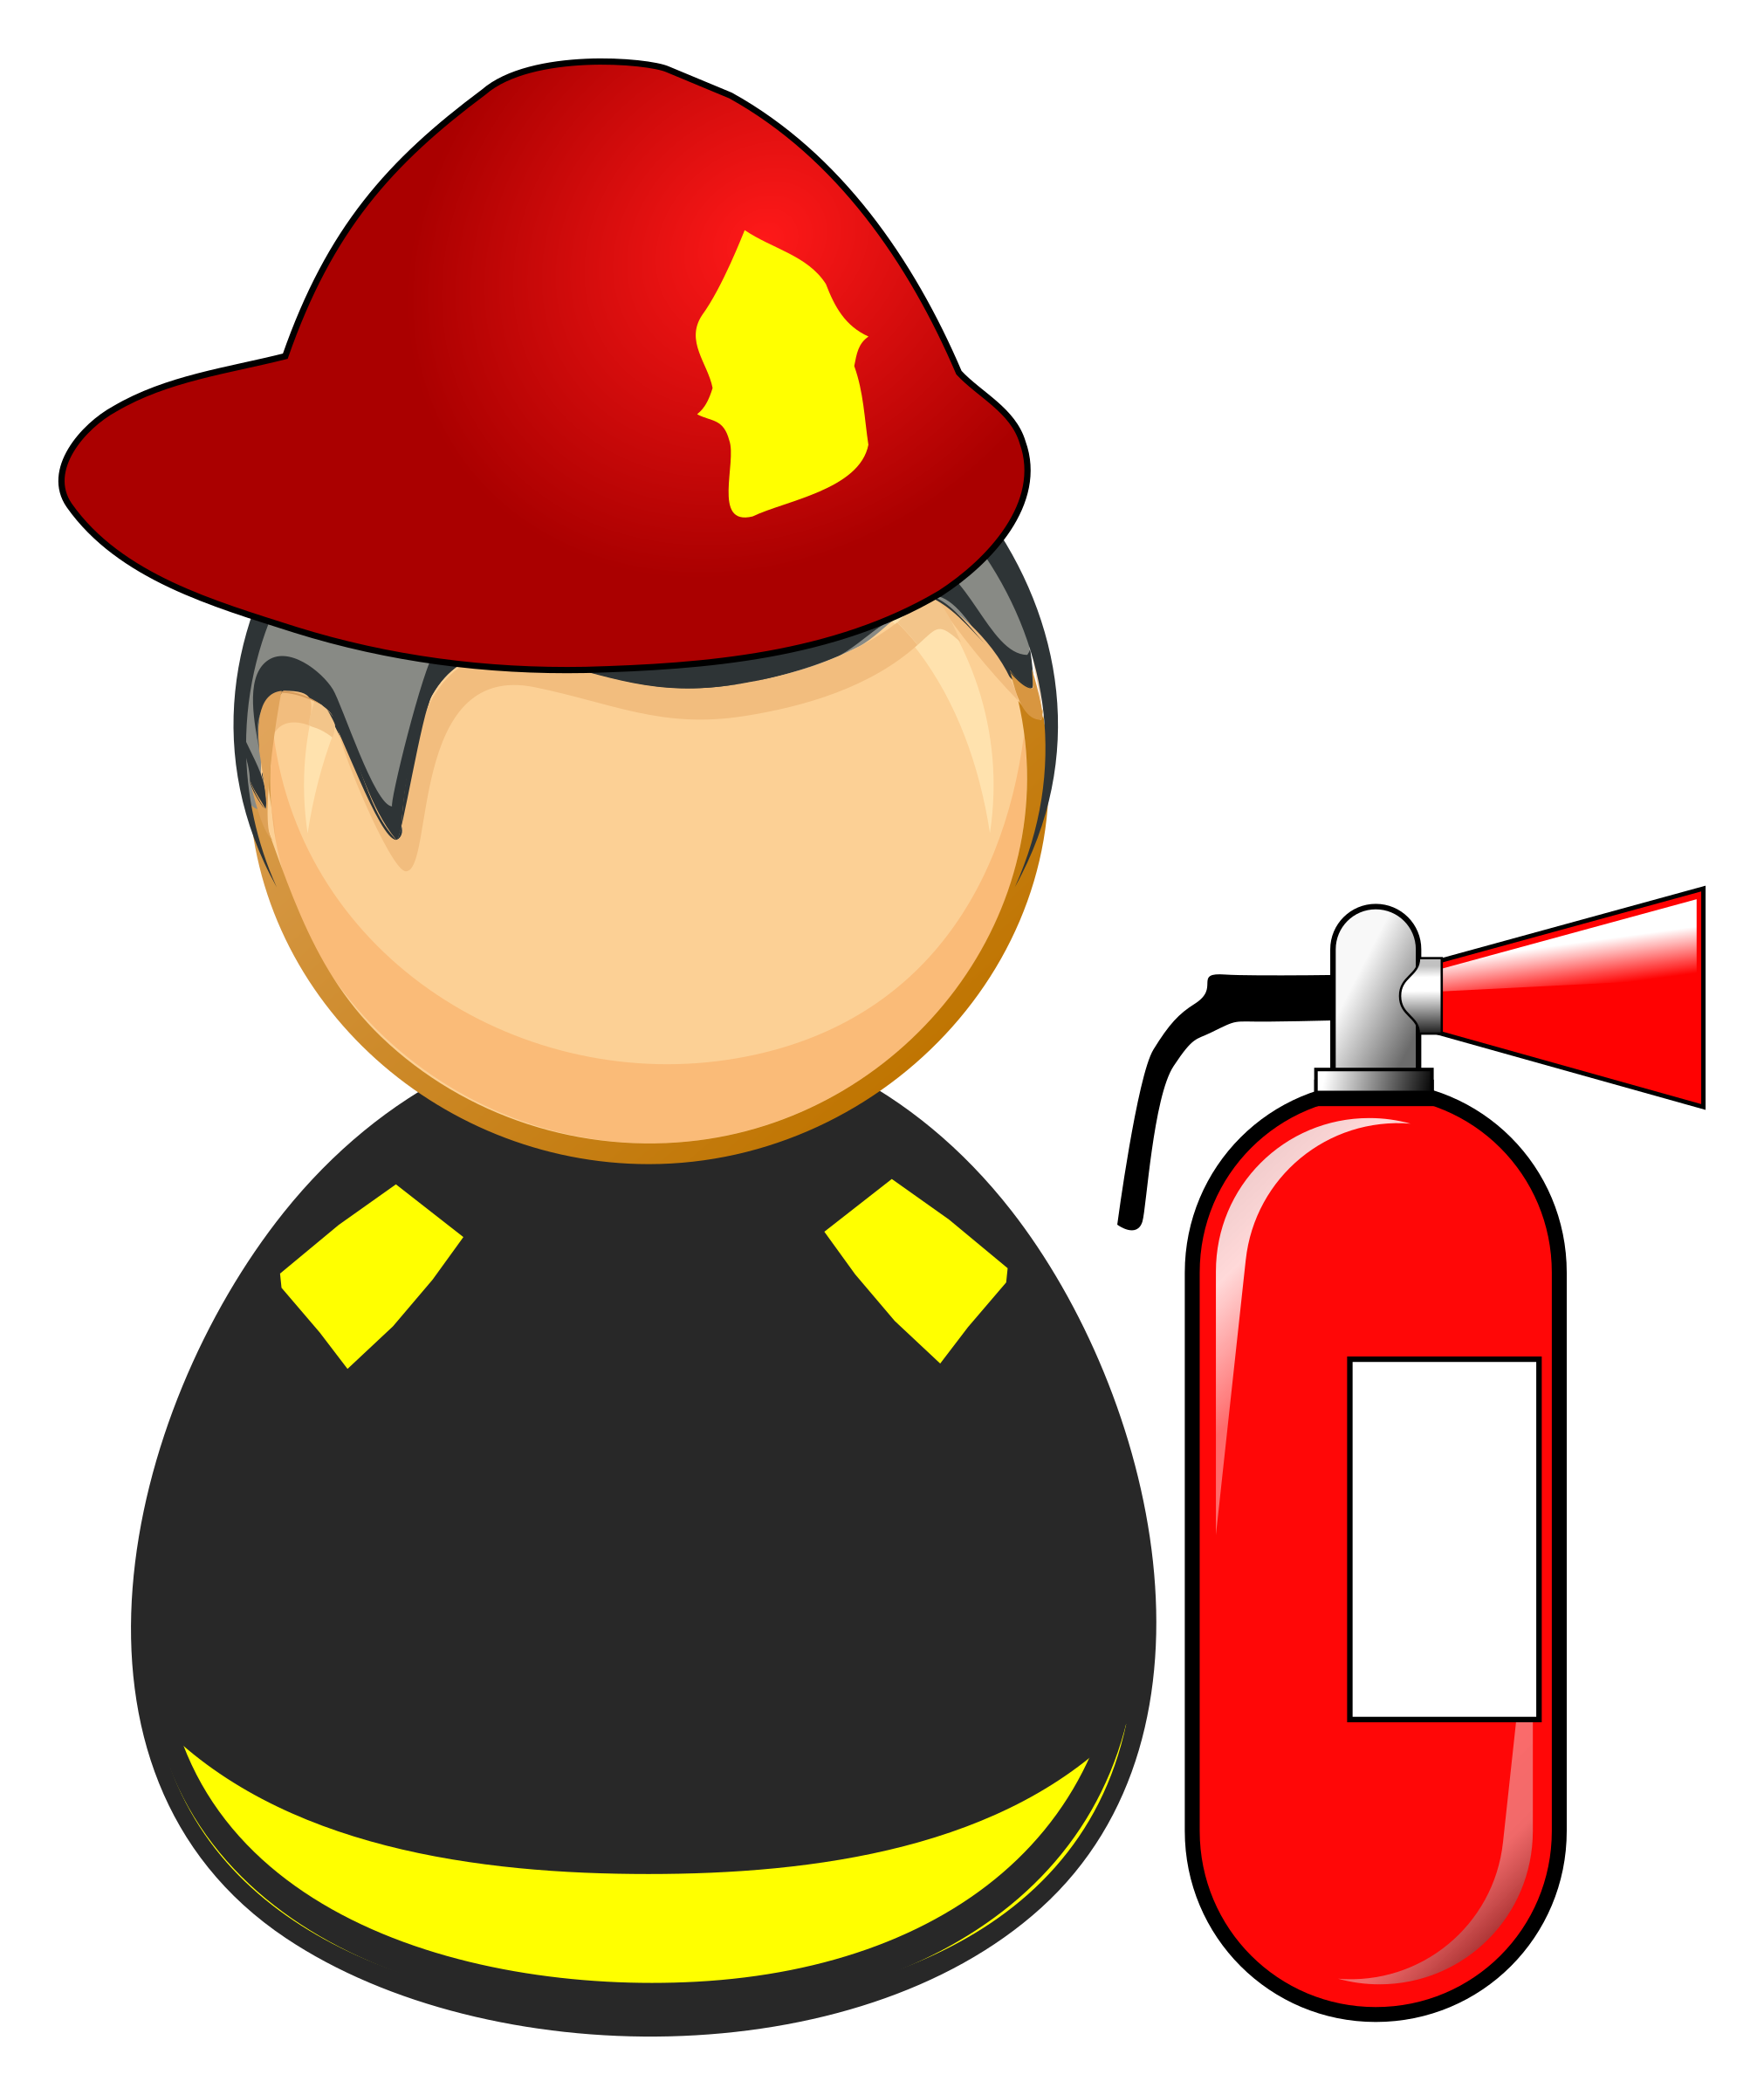 clip transparent stock Emergency clipart. First responder free on.